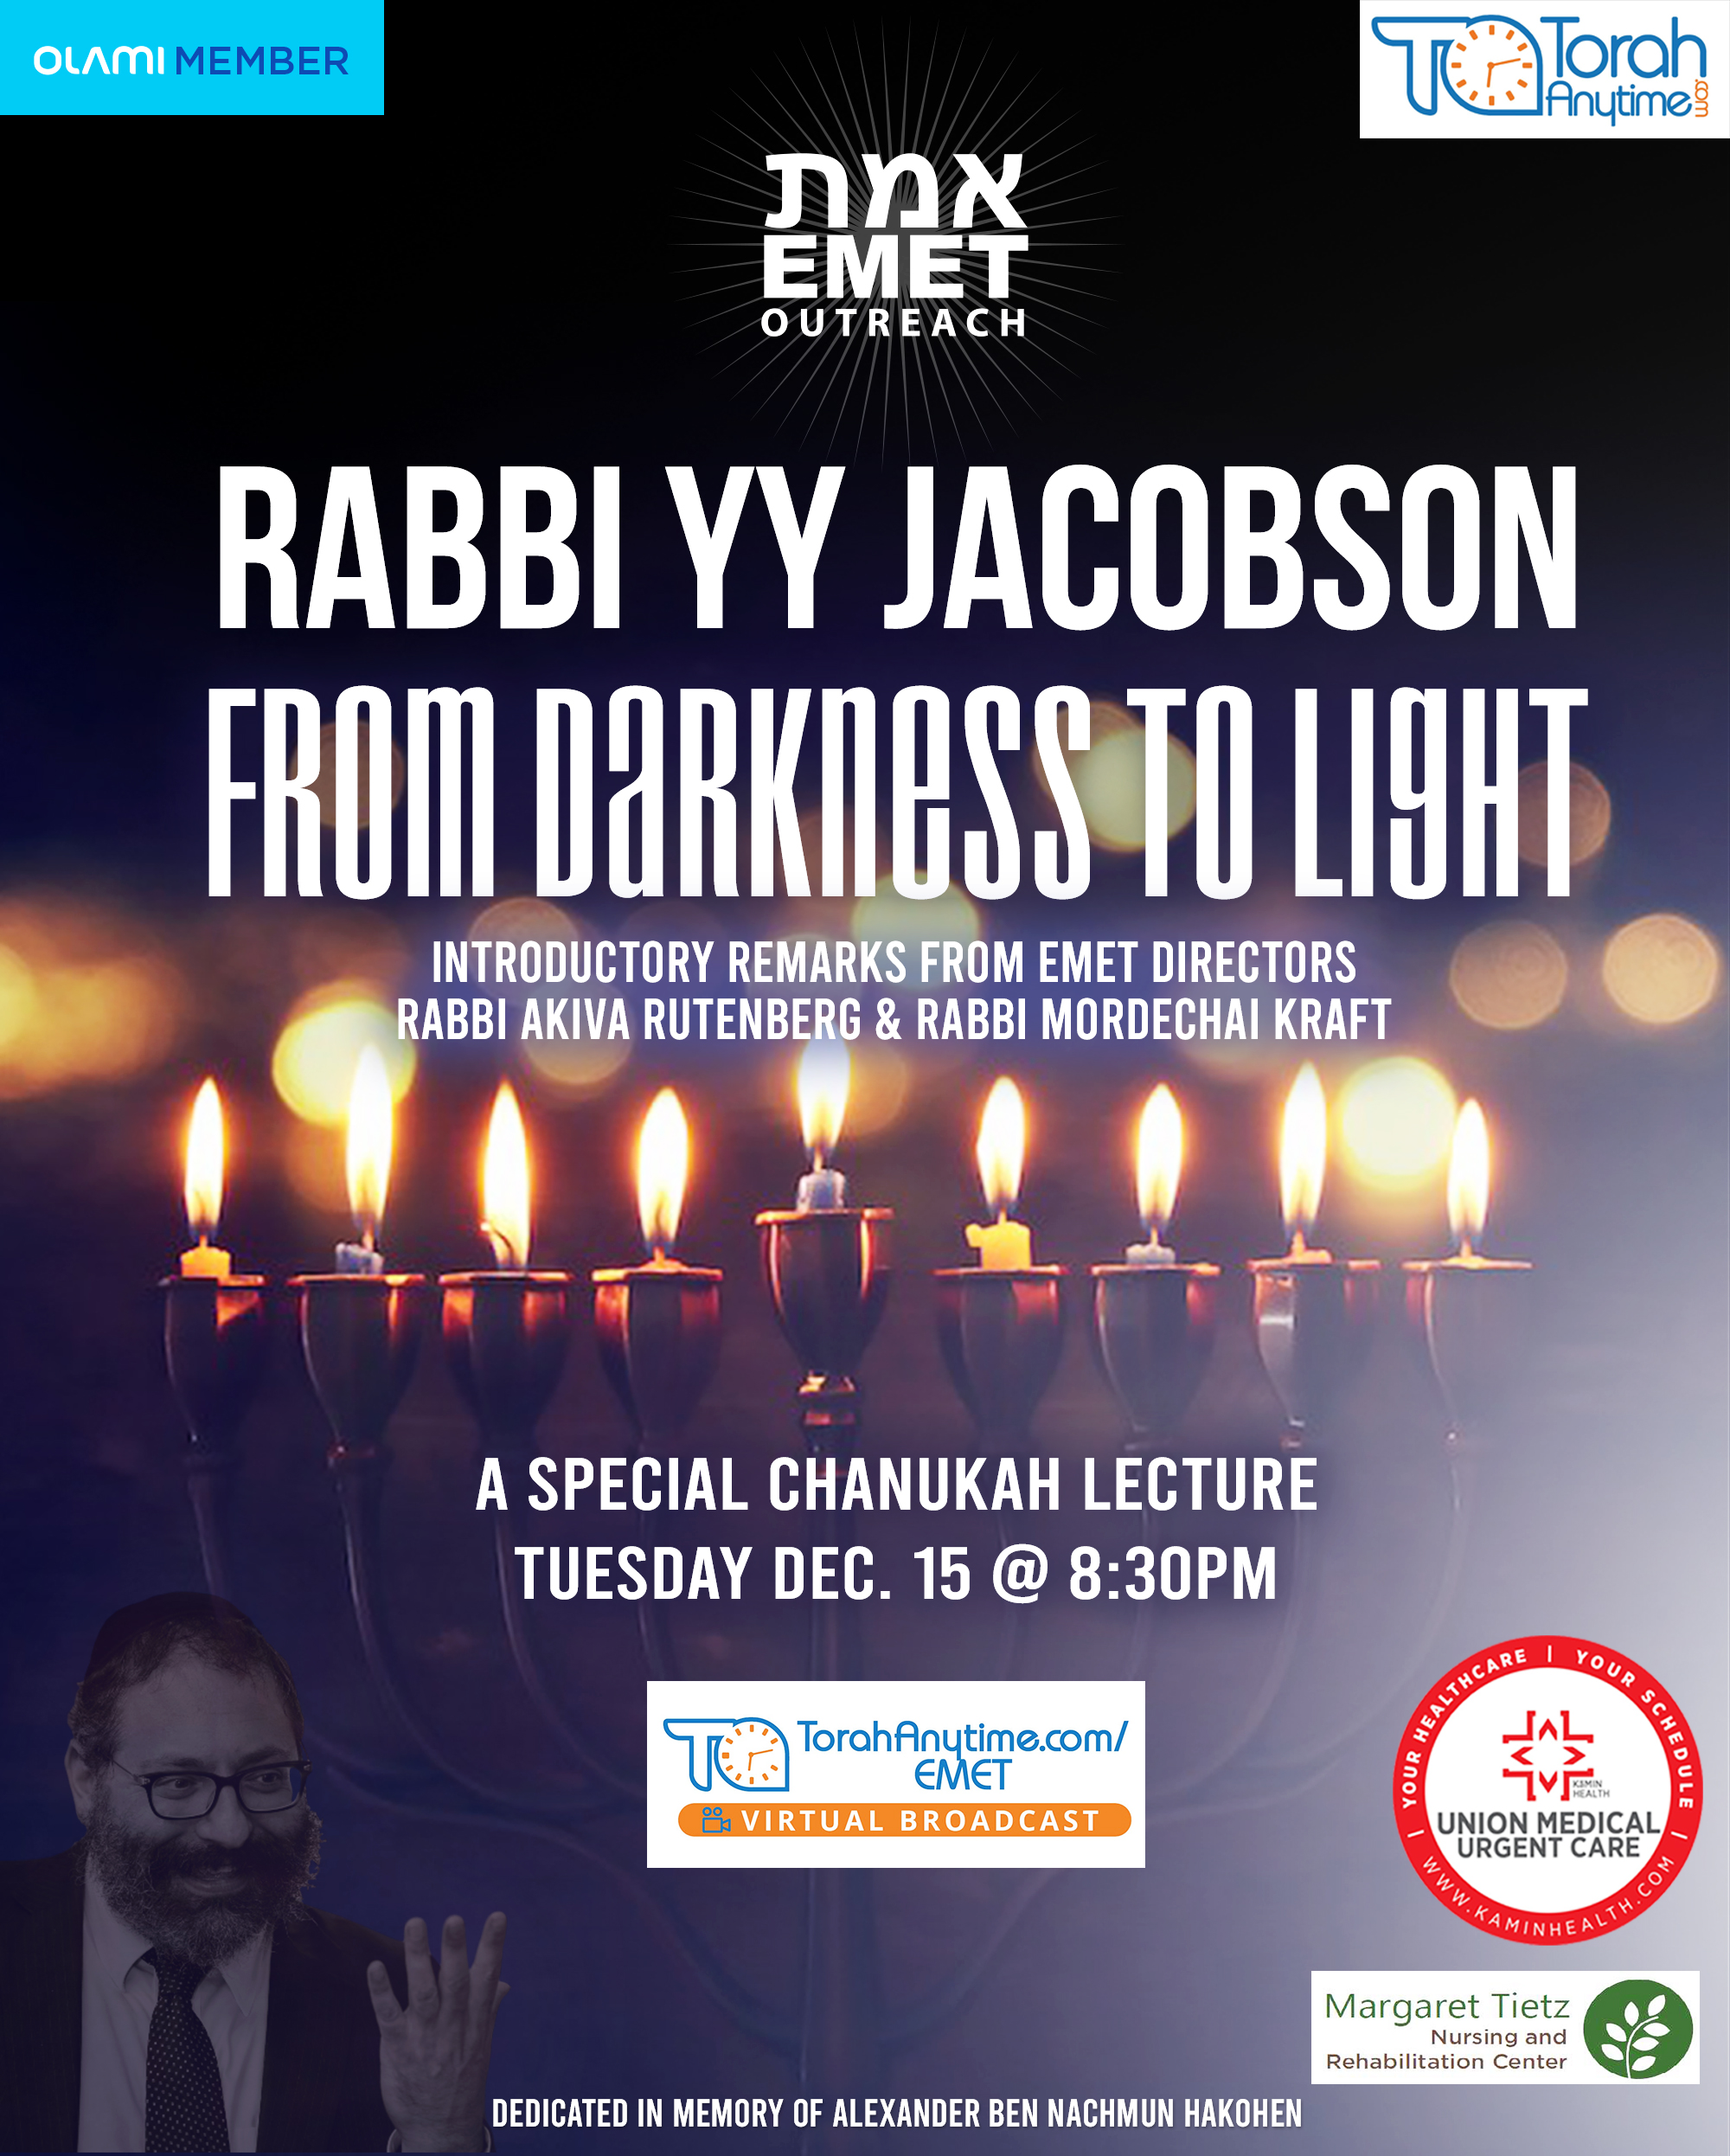 R YY Jacobson - From Darkness Into Light 2020V8 (1)